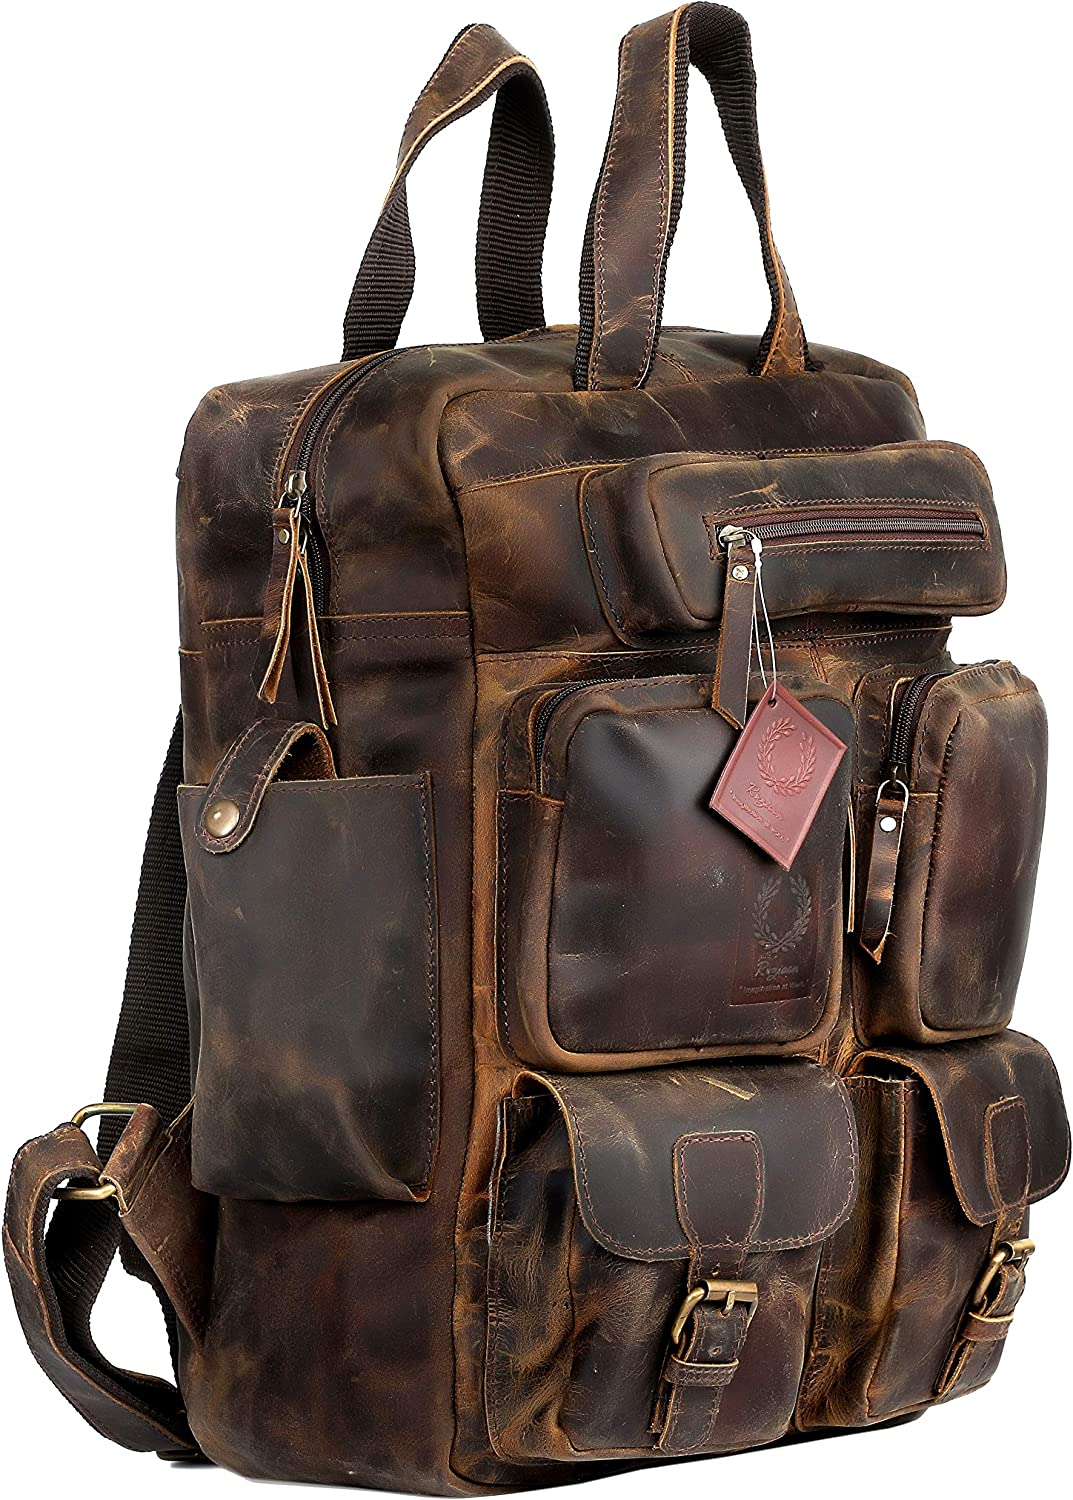 Genuine Leather Backpack for Man with 2 Side Pockets Color Black